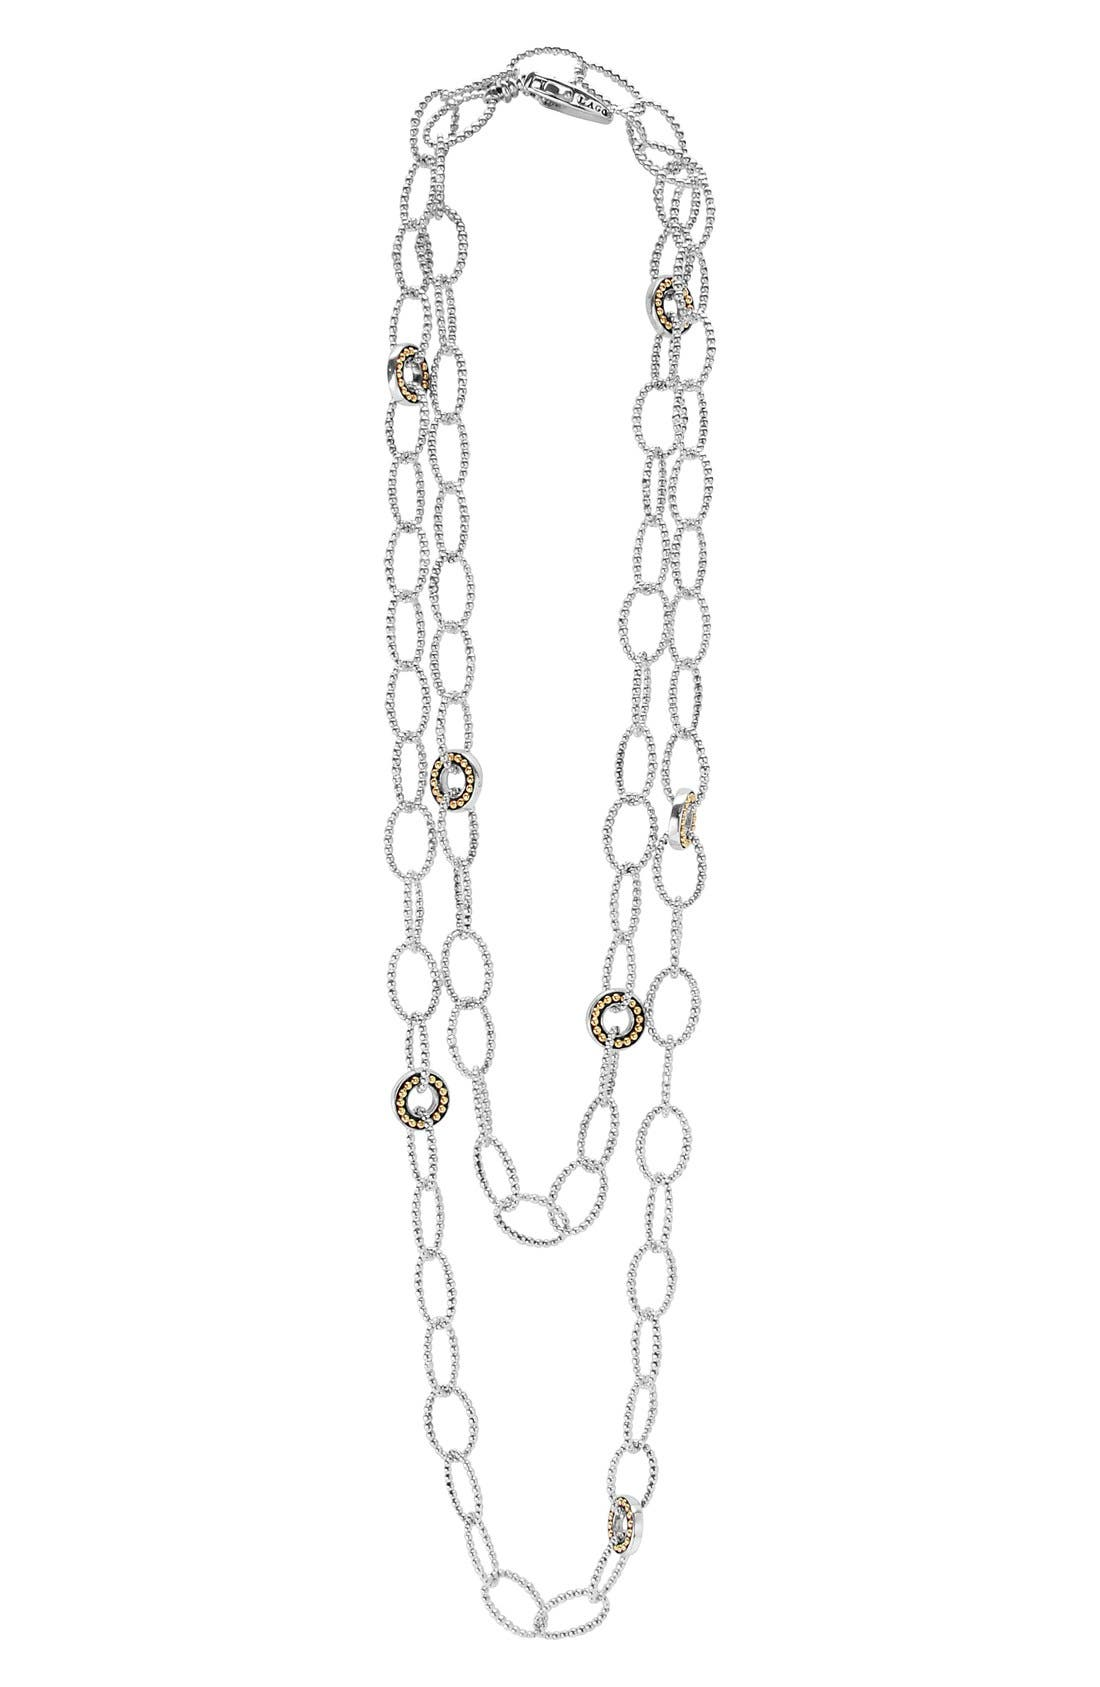 Alternate Image 1 Selected - LAGOS 'Enso' Long Station Necklace